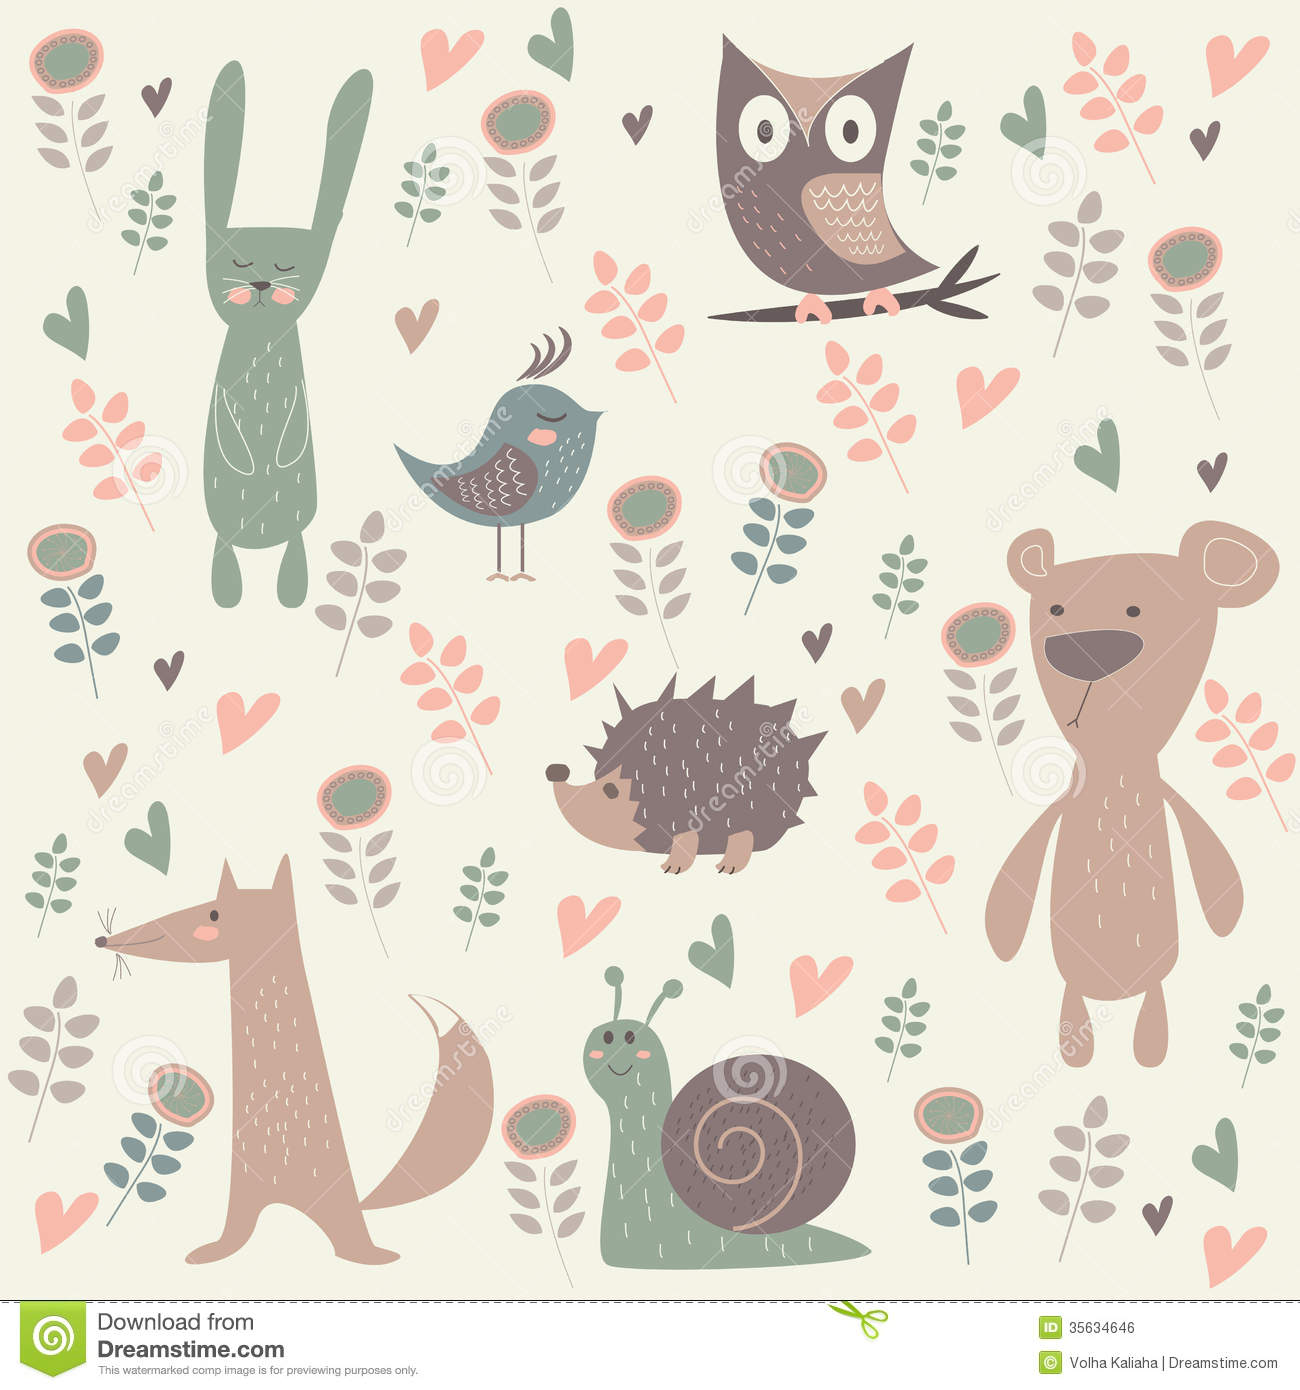 Bohemia Wallpaper 3d Cute Forest Animals Royalty Free Stock Image Image 35634646